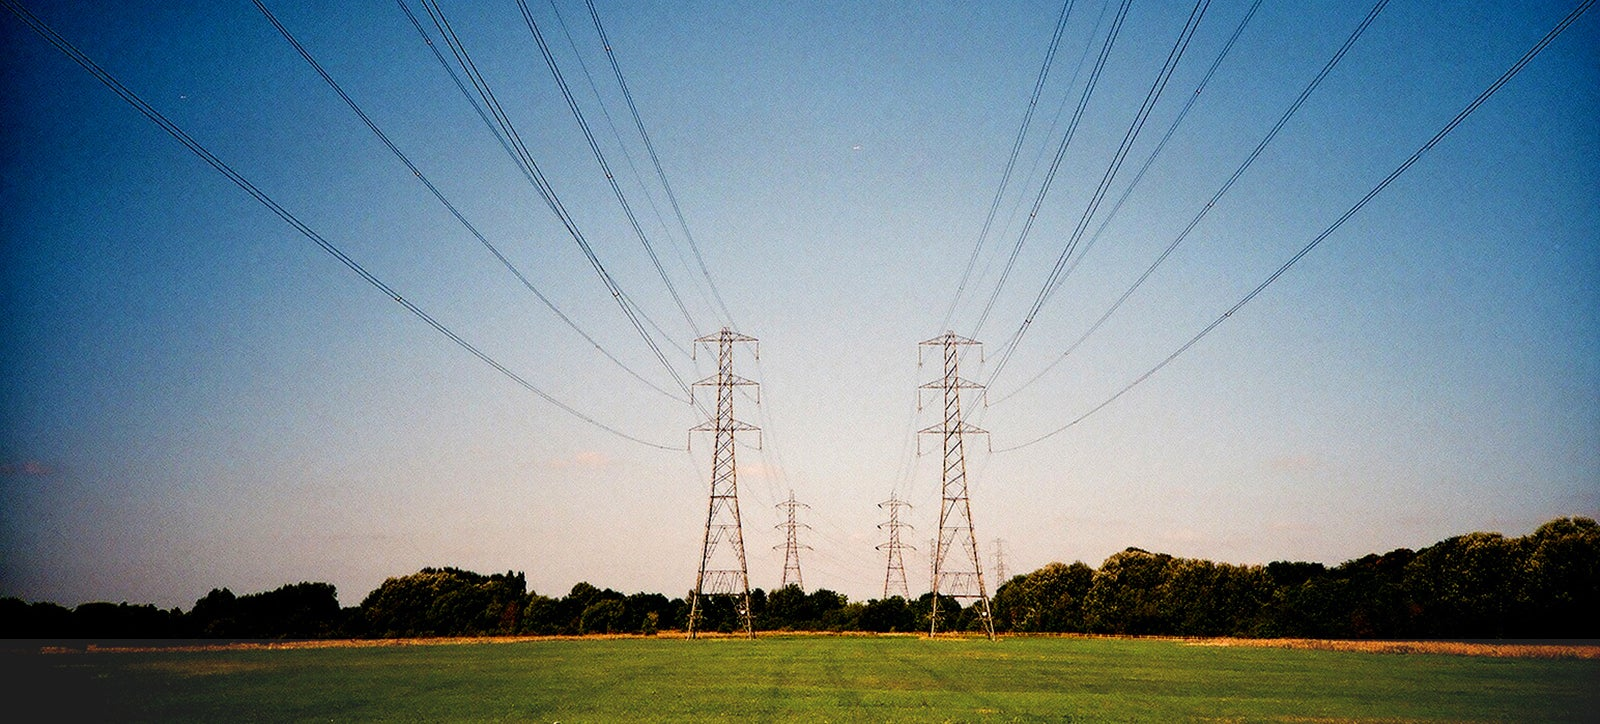 Can the Power Grid Survive a Cyberattack?